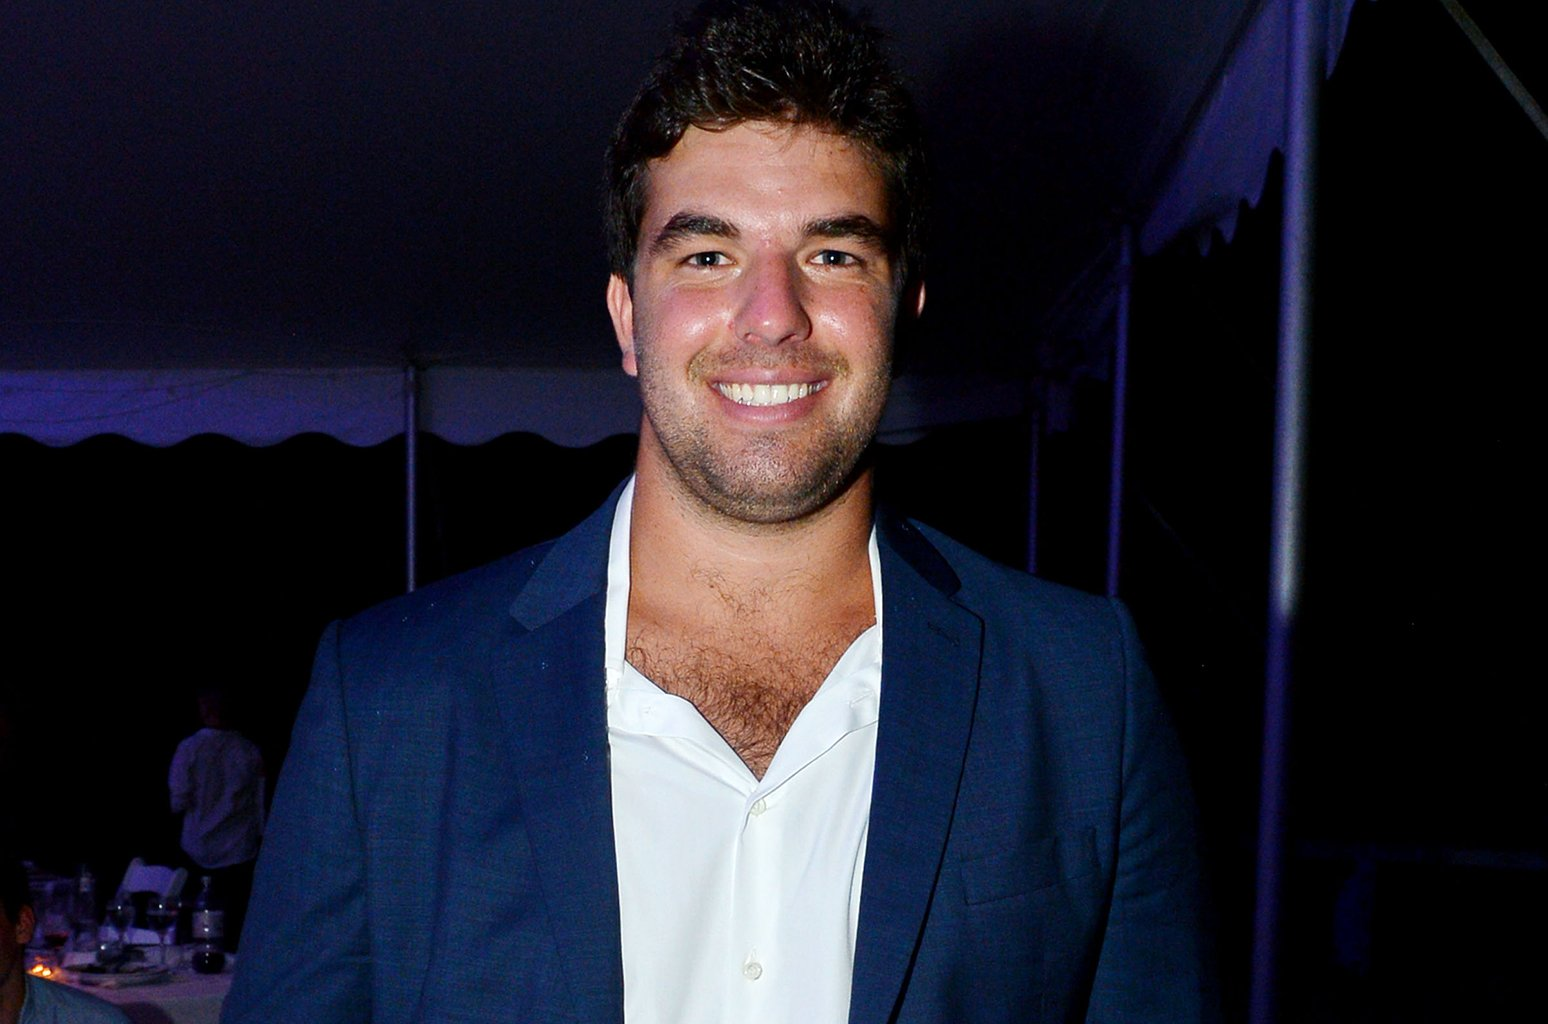 Fyre Festival Promoter Billy McFarland Pleads Guilty to Wire Fraud https://t.co/uOwE9RIJhu https://t.co/ClKJIqQSTe